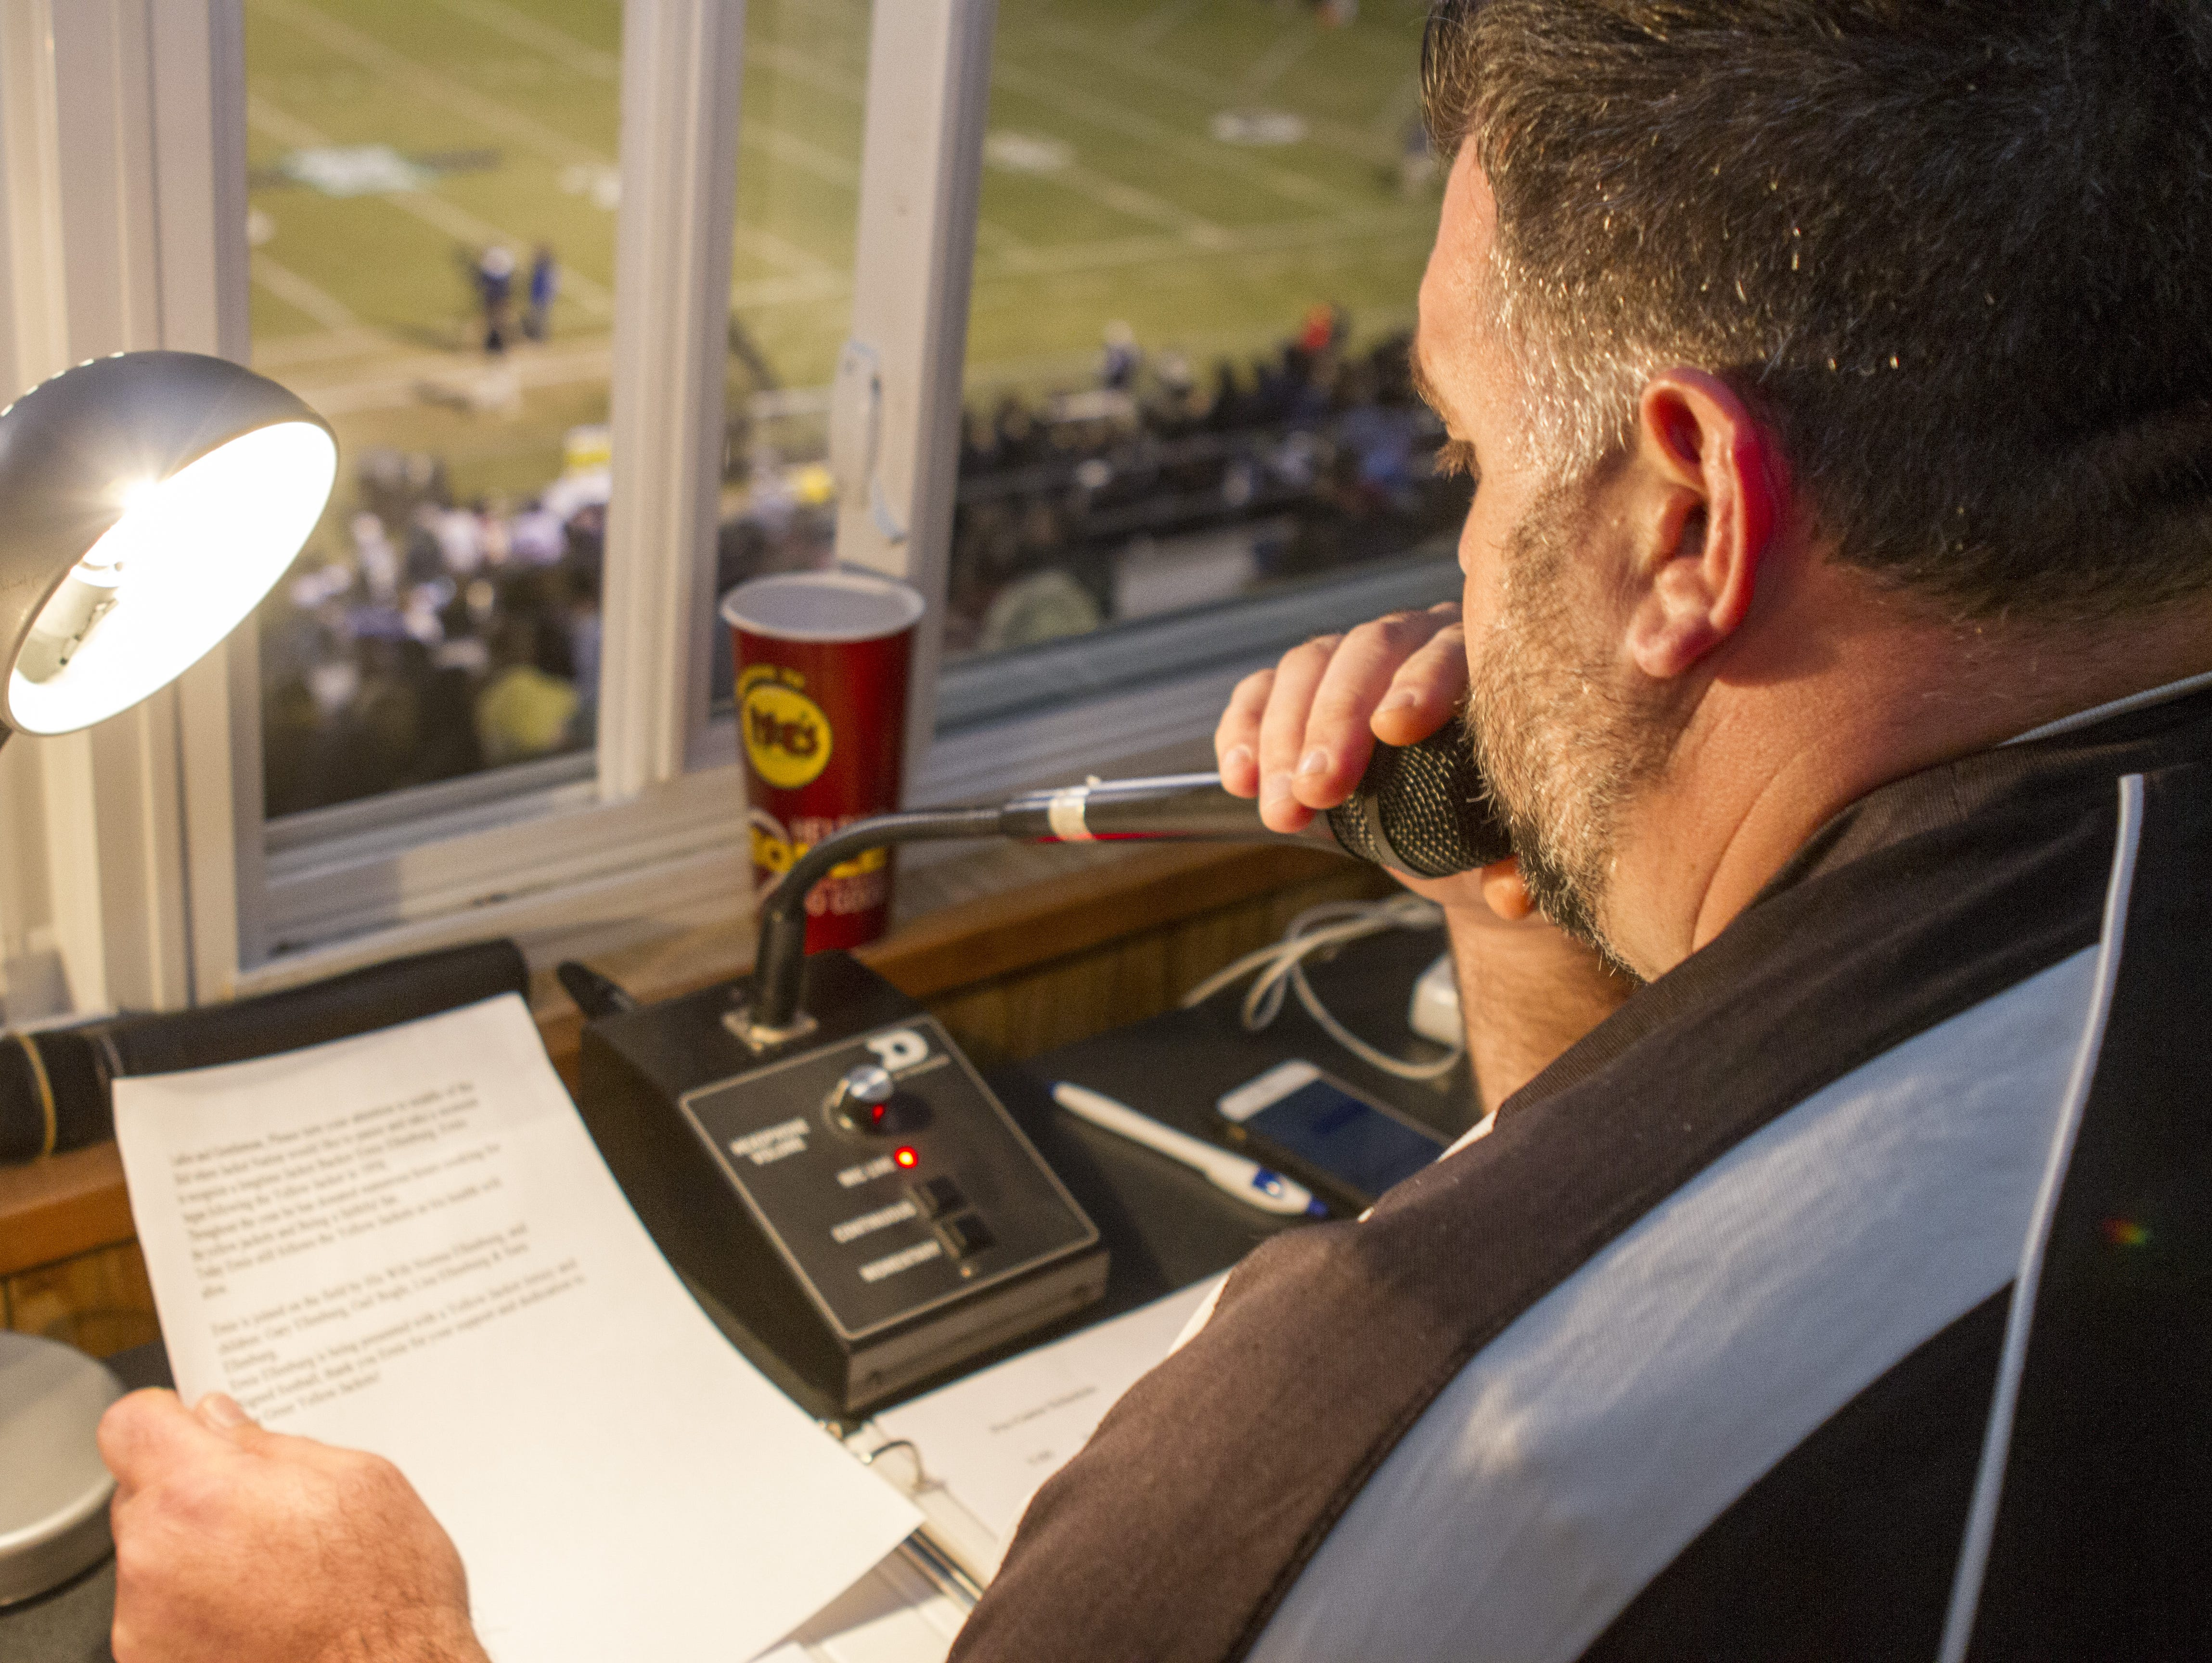 Chad Hannon, the public address announcer at Greer High School, reads off an advertisement before the game against Travelers Rest High School. The home Yellowjackets were able to win the game, scoring 45 straight points after going down 13-0.